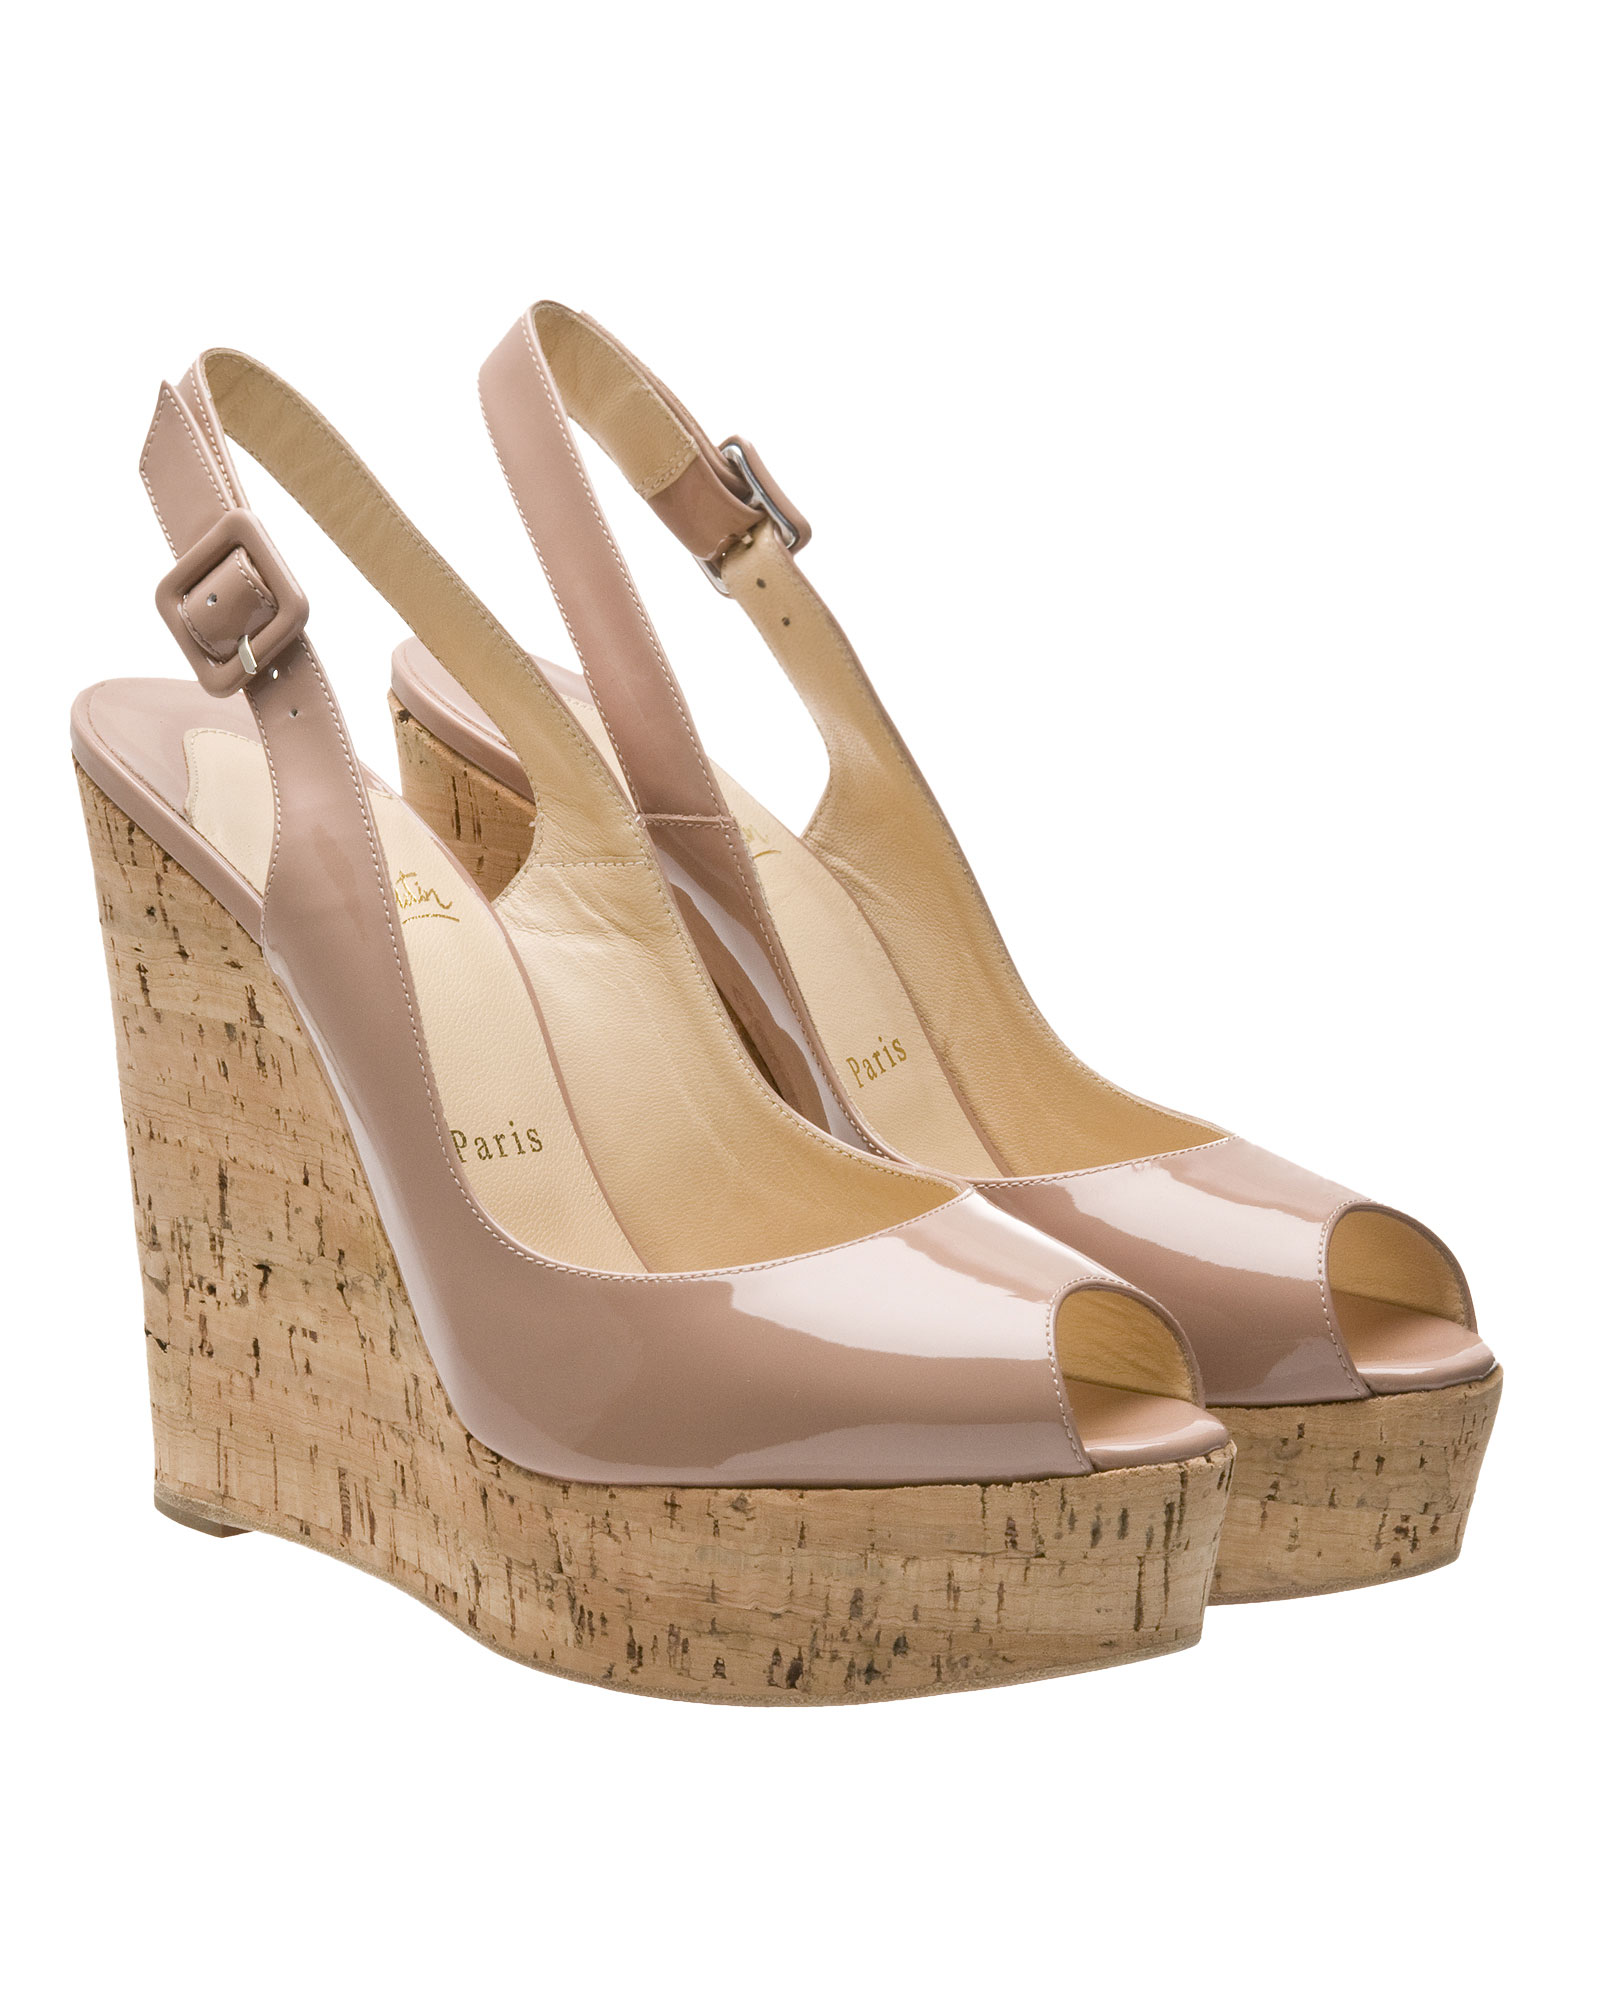 repica shoes - Christian louboutin Une Plume Slingback Cork Platform, Nude in ...